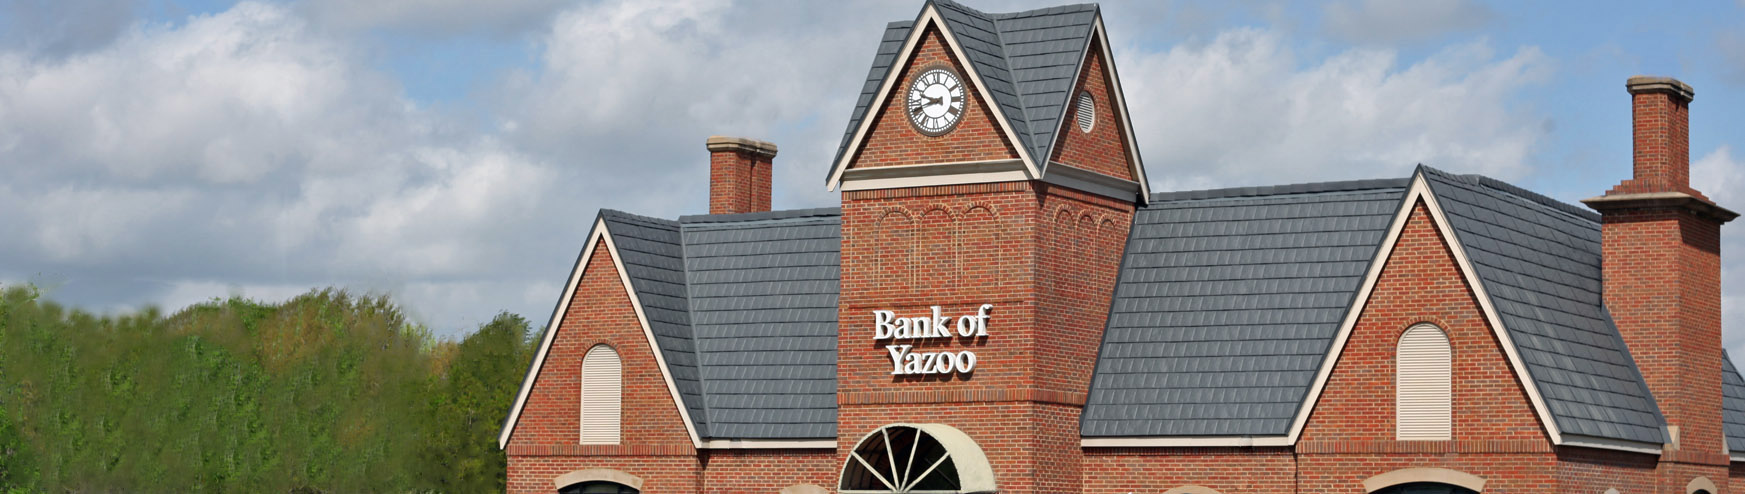 Bank of Yazoo branch.jpg